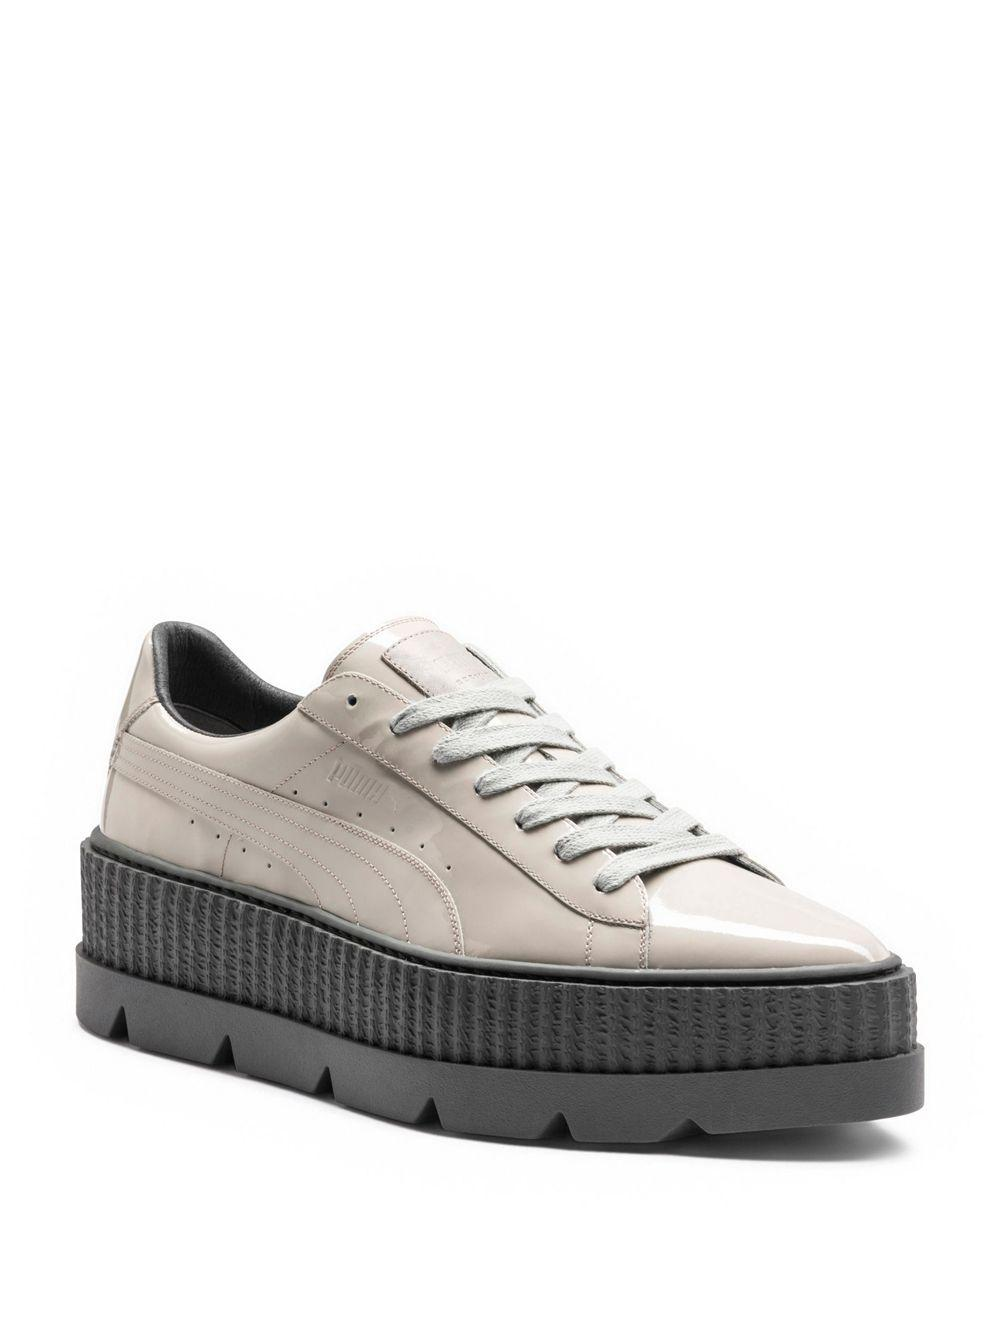 PUMA Pointy Patent Leather Creeper Sneakers in Gray - Save 55% - Lyst a377cacde